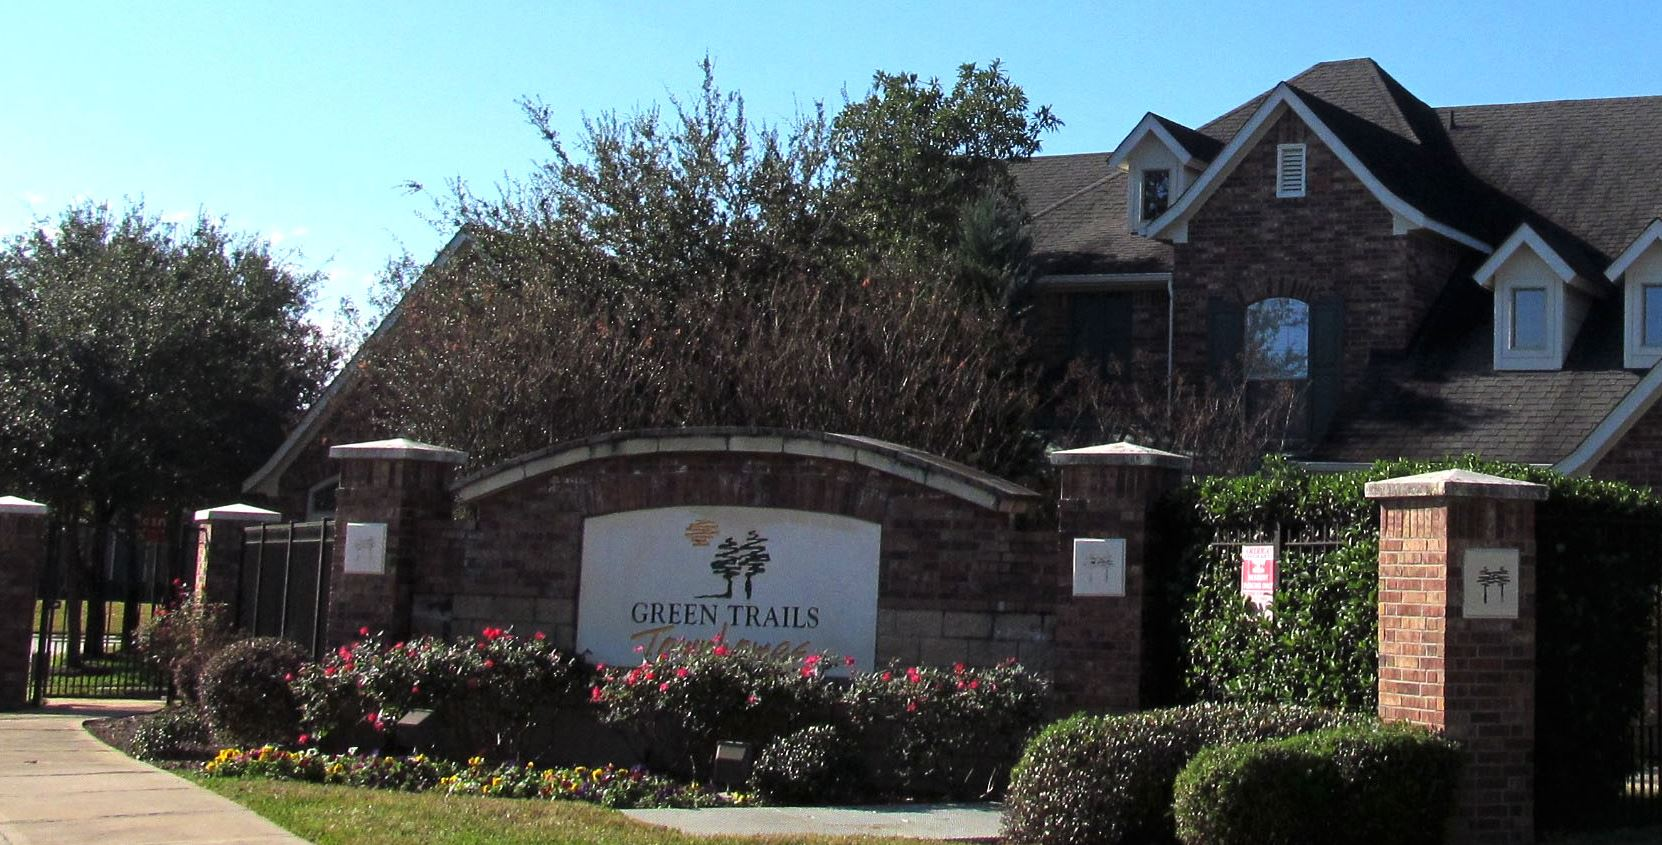 Townhomes at Greentrails Homeowners Association